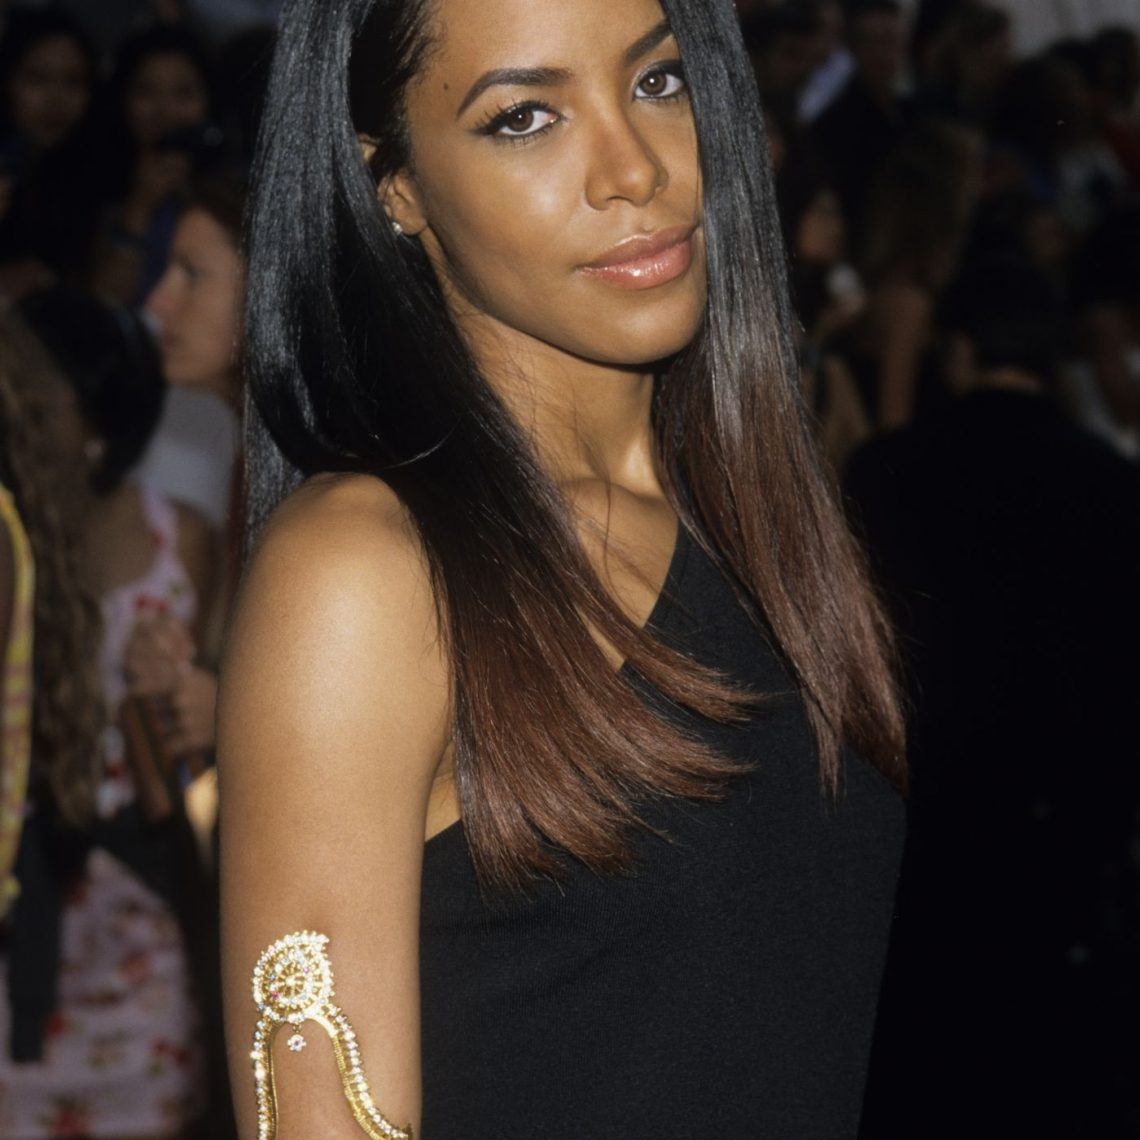 Aaliyah One in a Million for Throwback Thursday